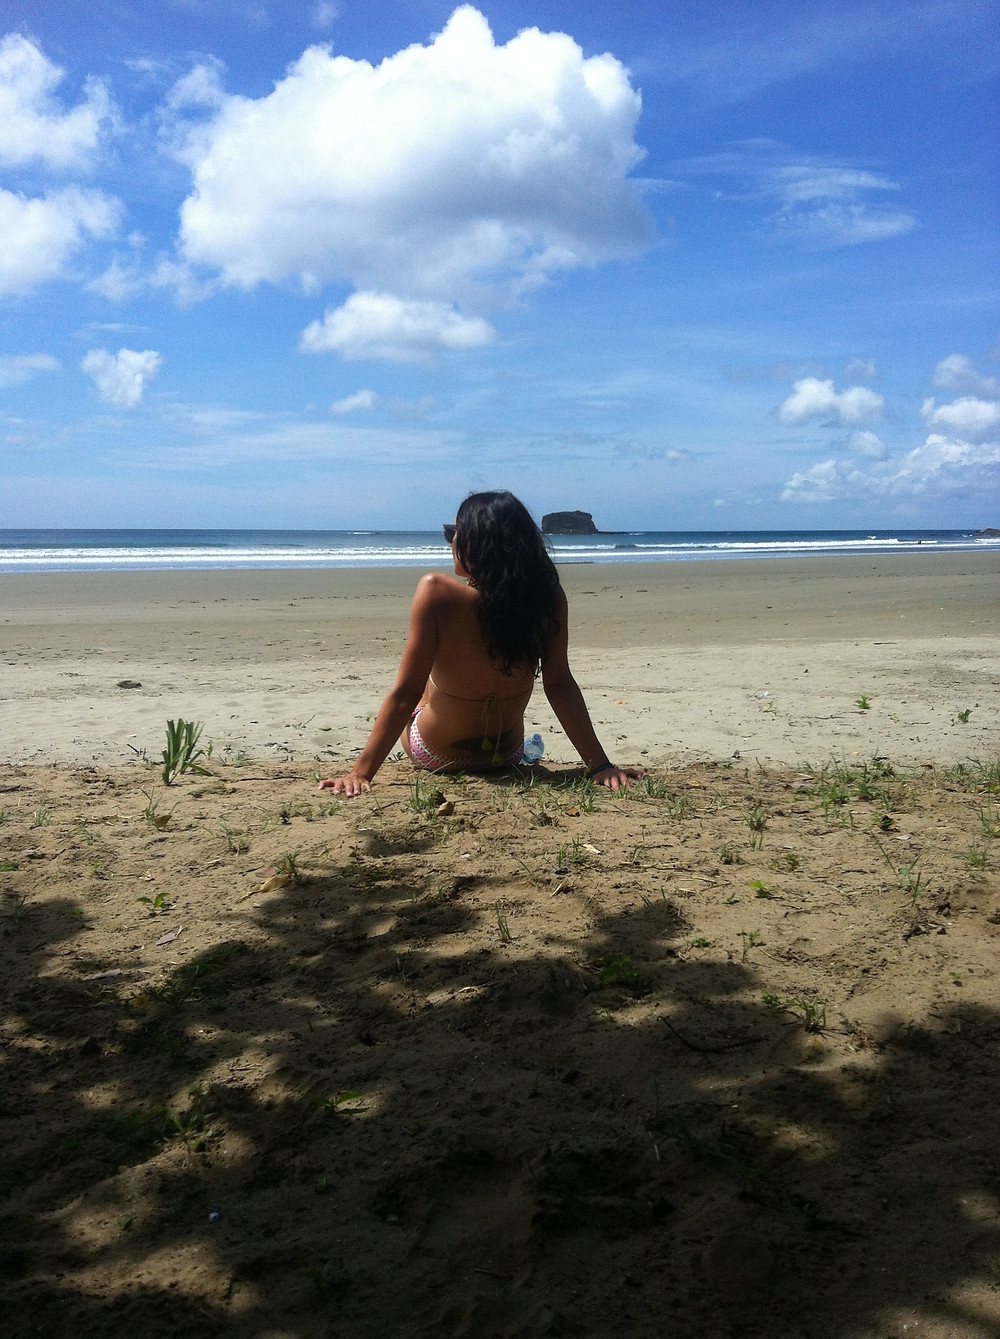 Me on a beach in Nicaragua